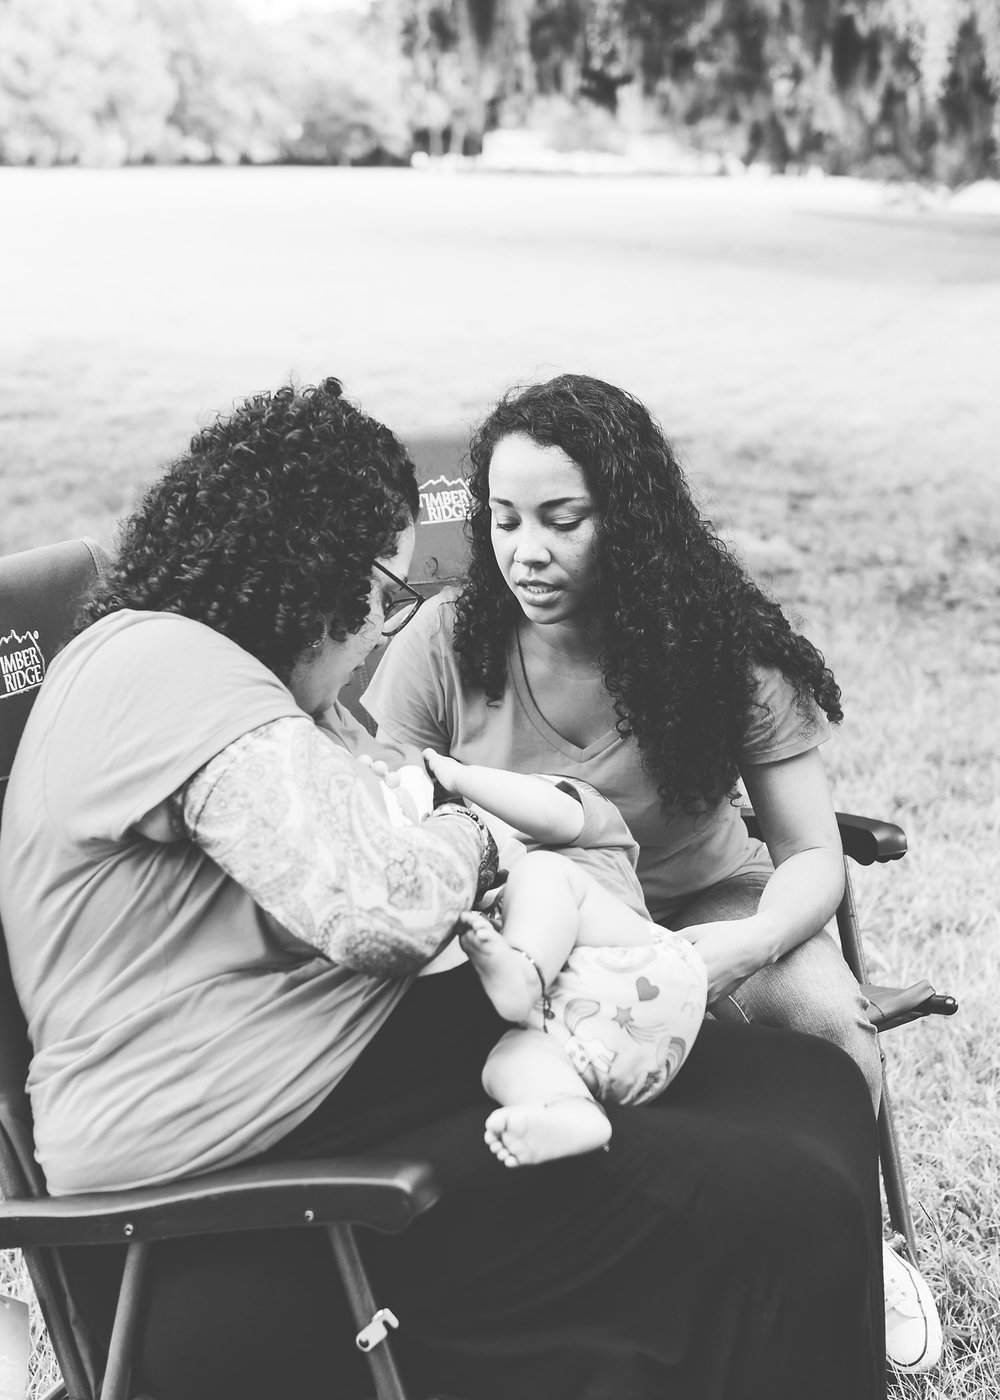 Doula at park with baby giving lactation advice